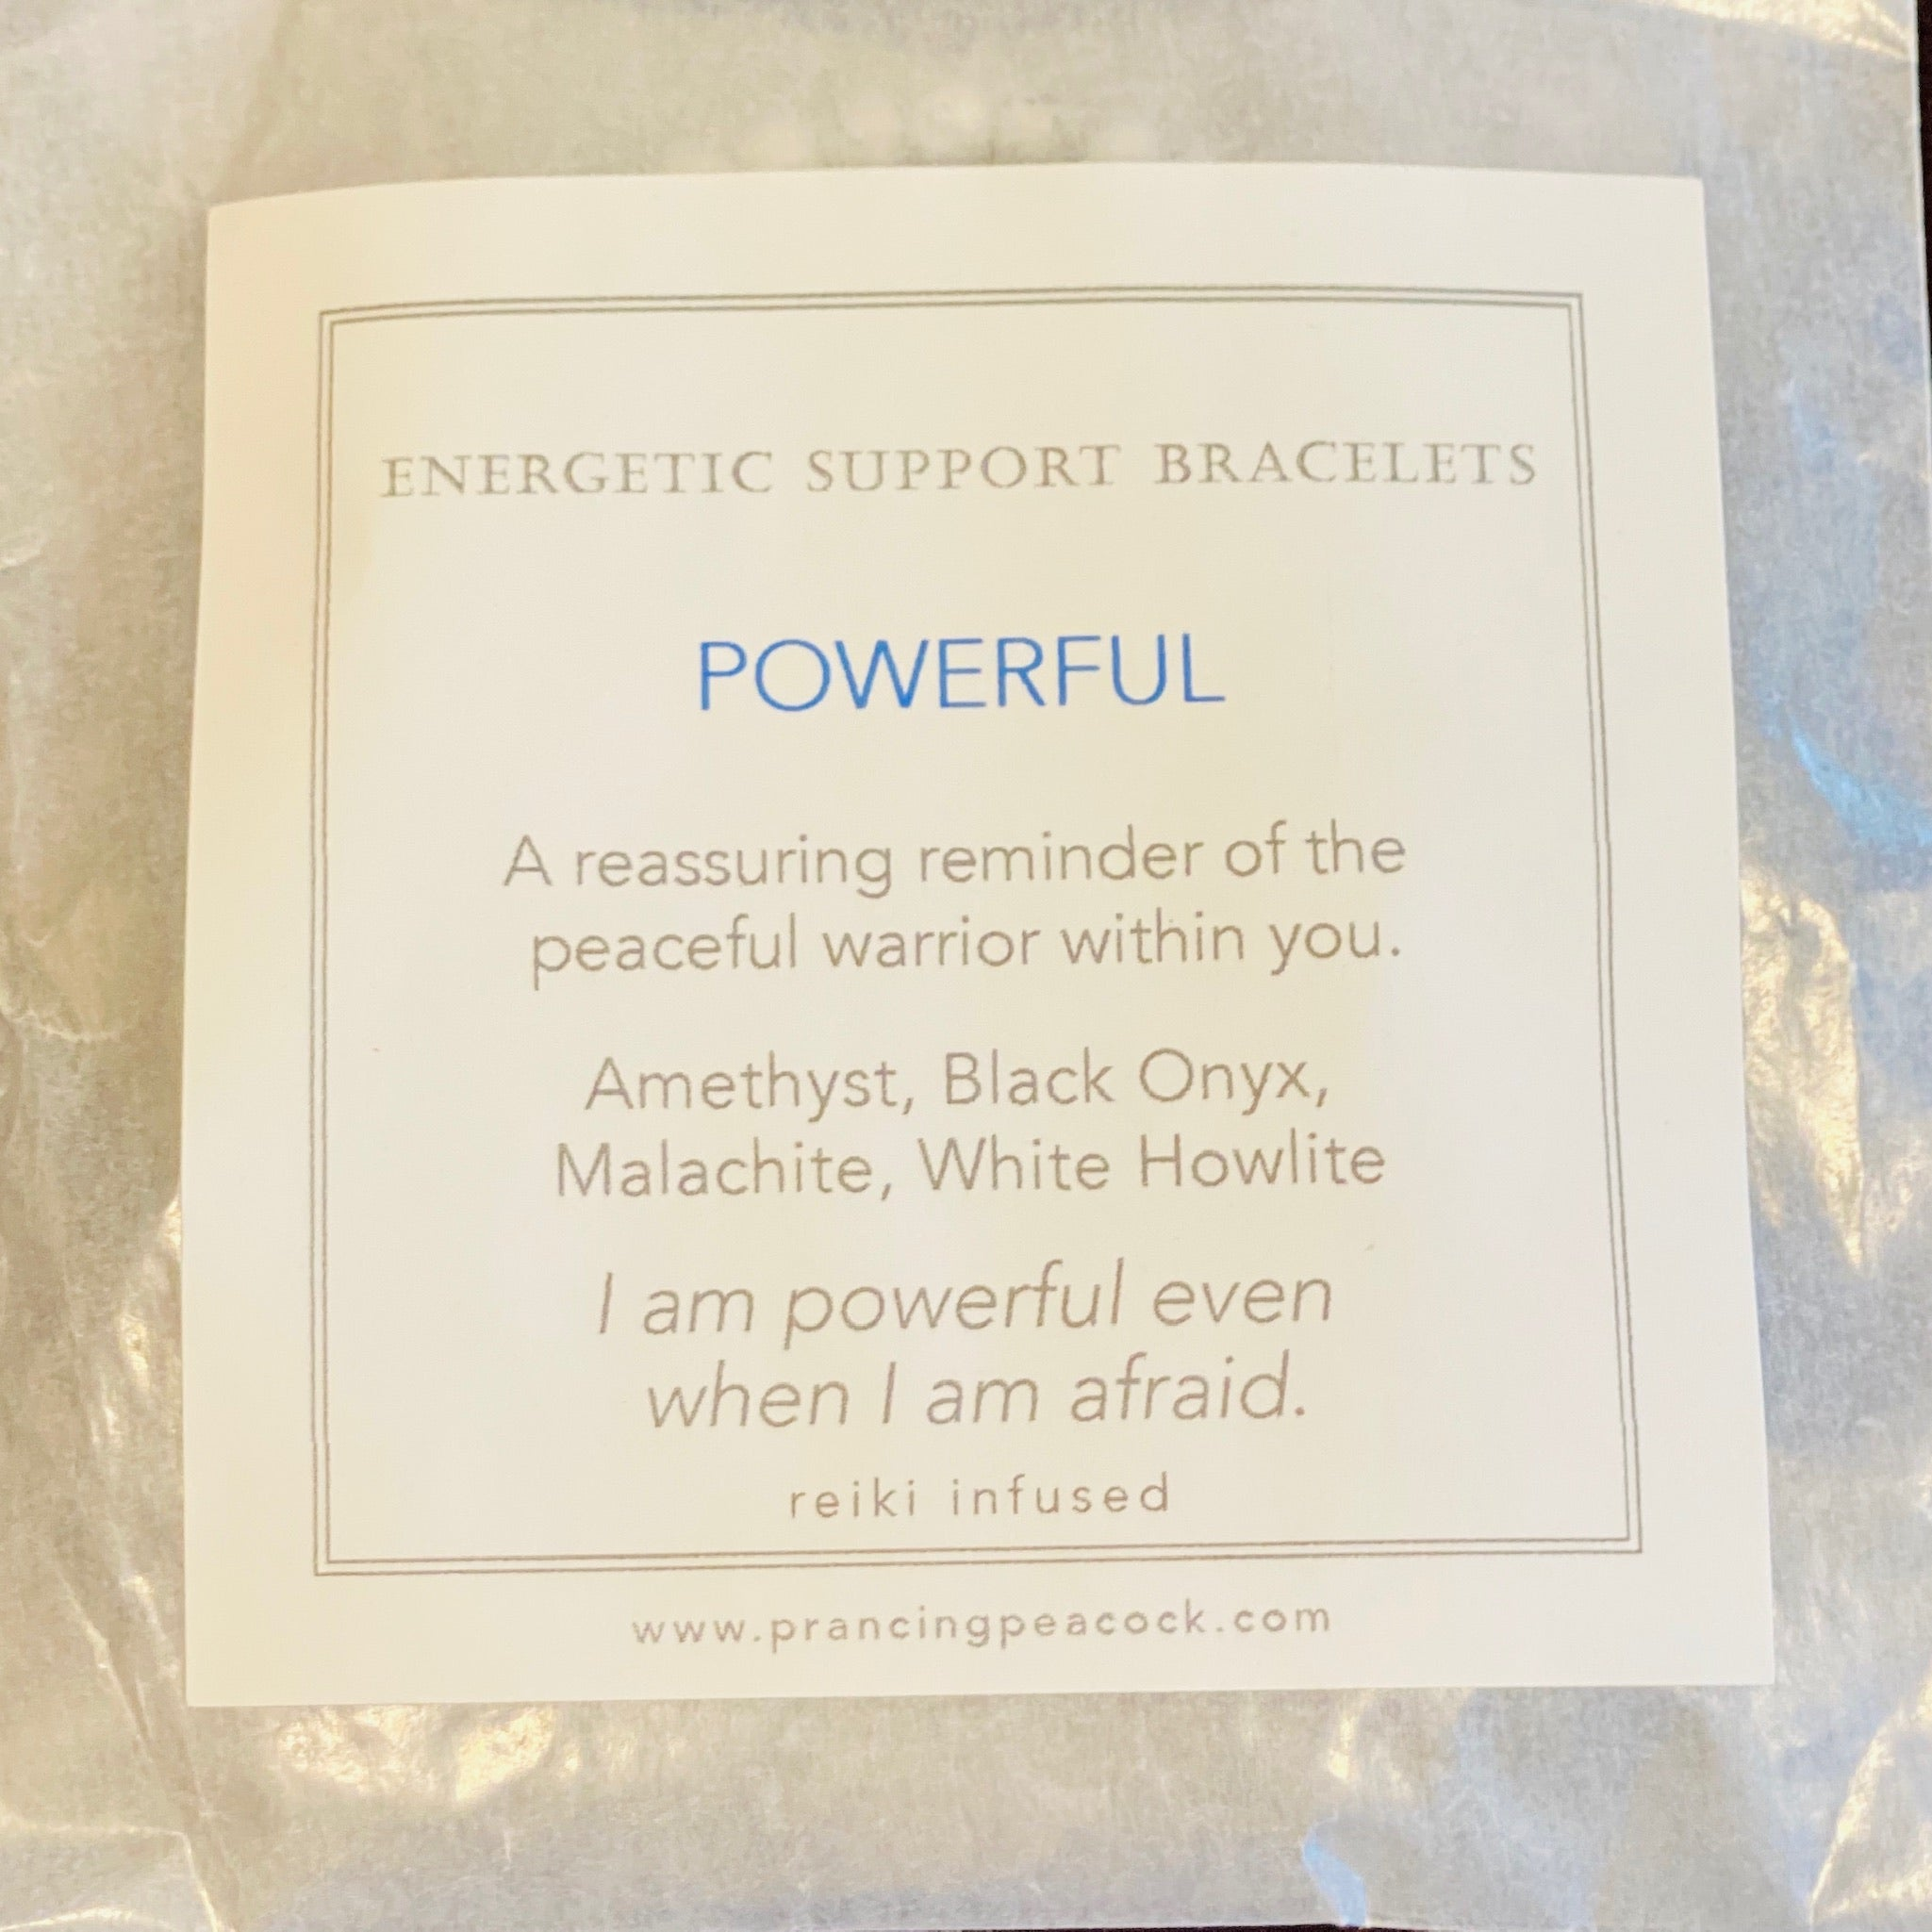 Energetic Support Bracelet: Powerful